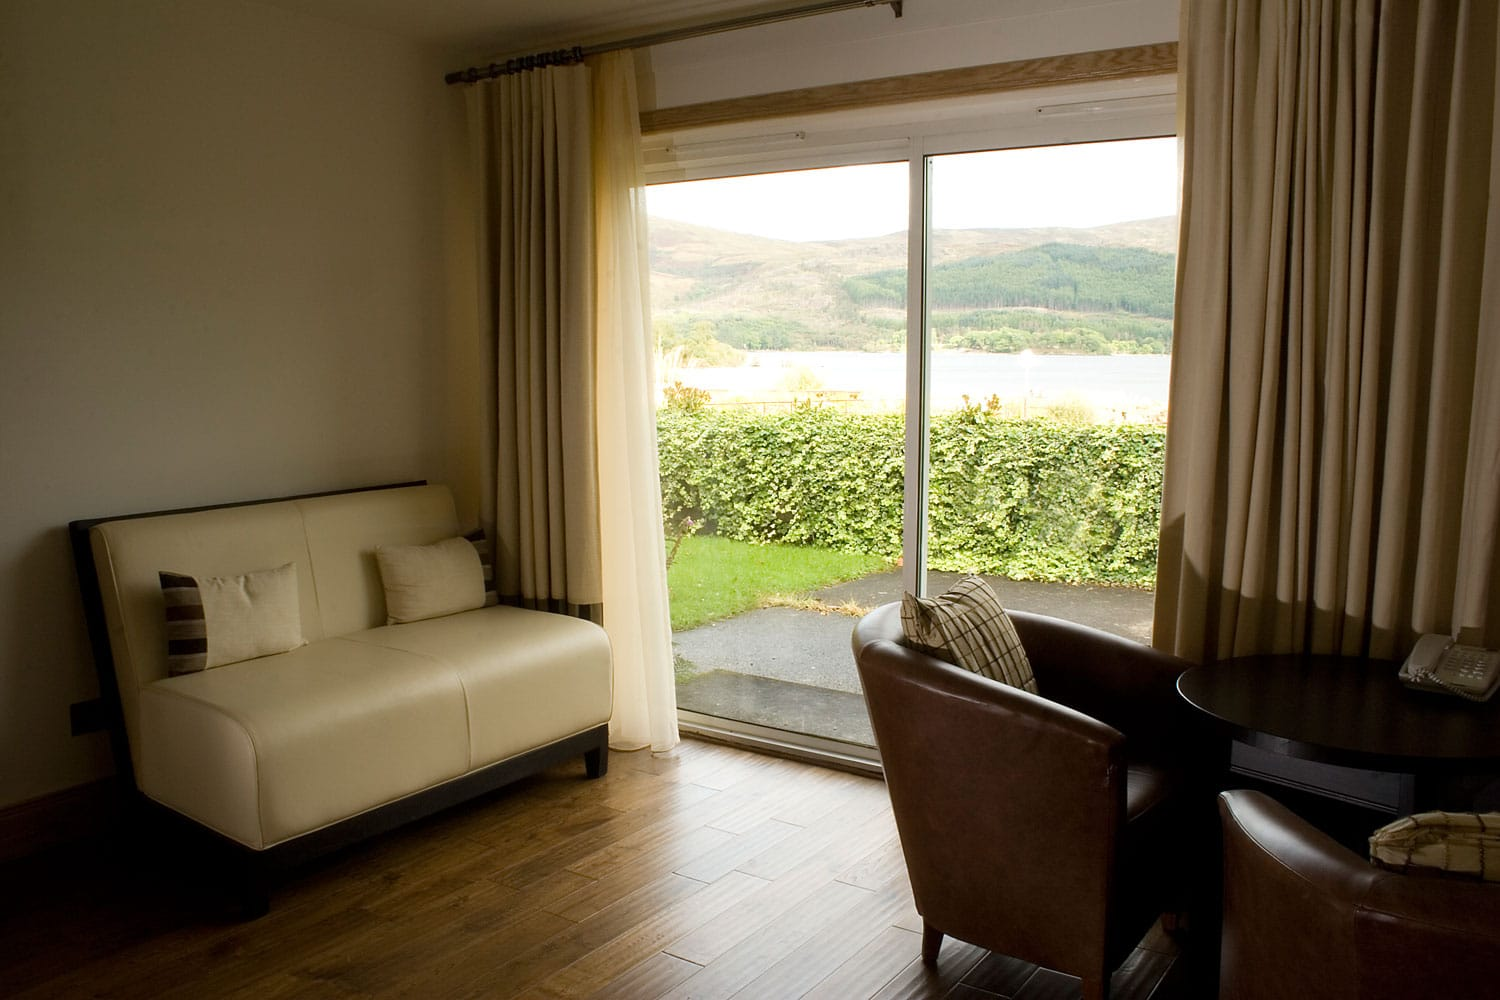 The Inn Beach House View to Loch Lomond